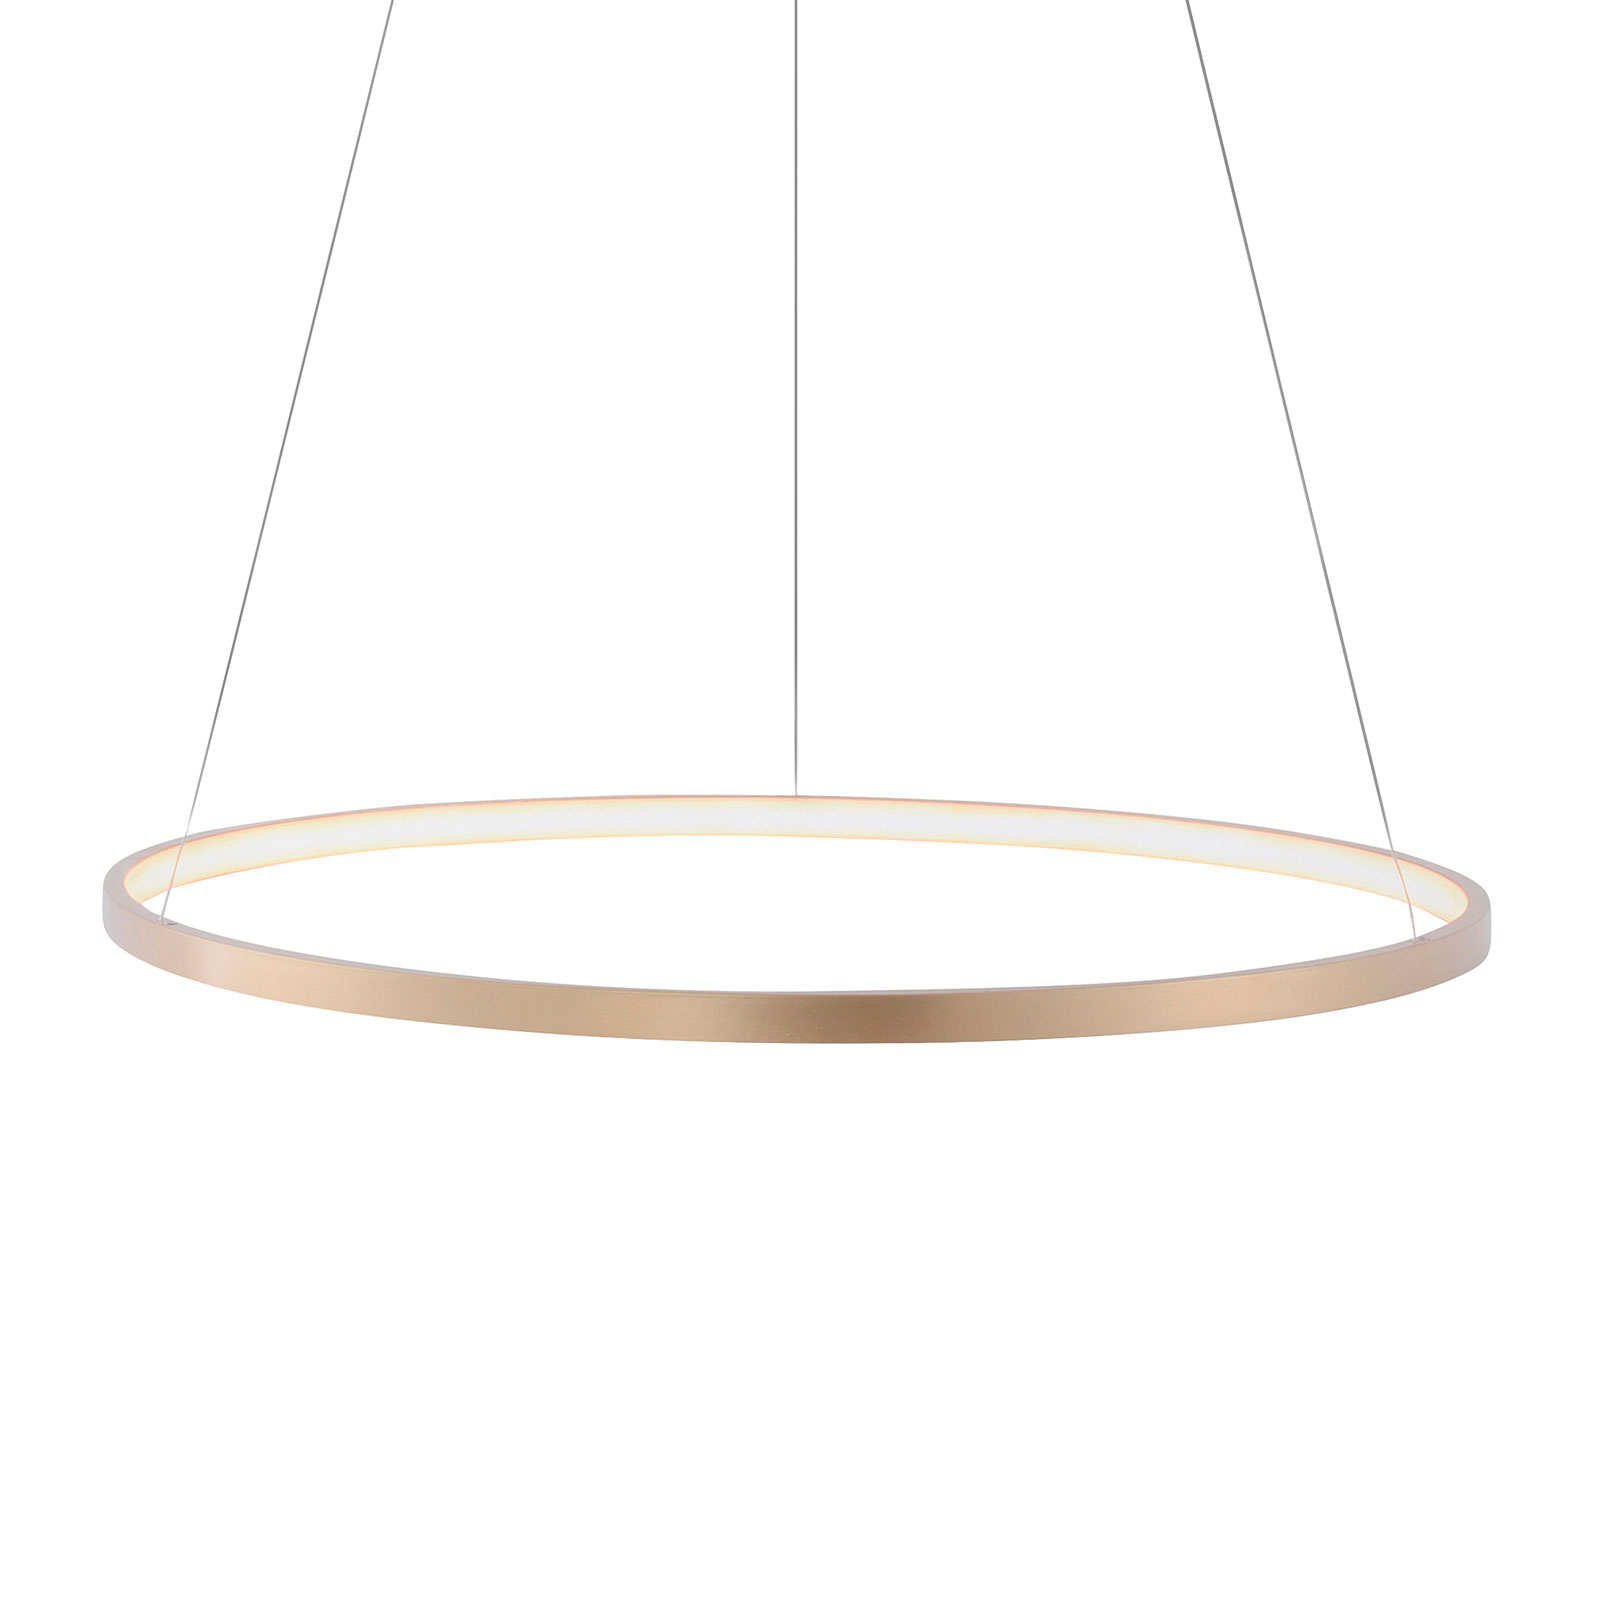 Suspension LED Circle dorée, Ø 60 cm